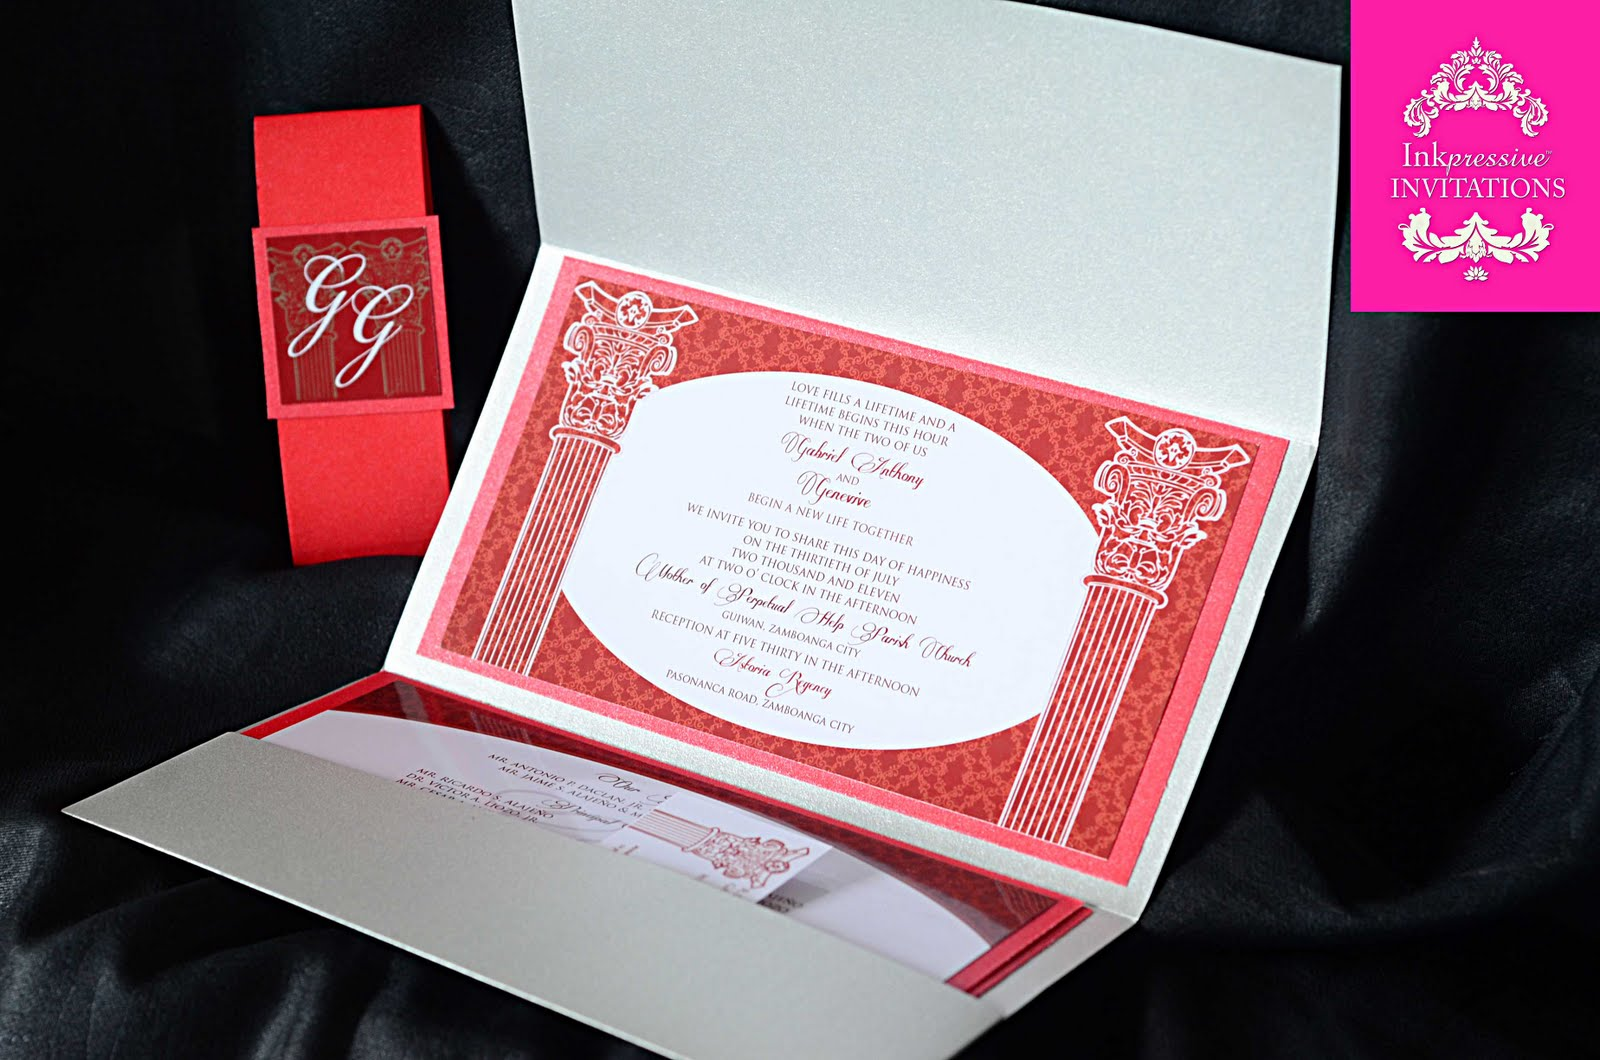 Red and Silver Wedding Invitation | INKPRESSIVE INVITATIONS